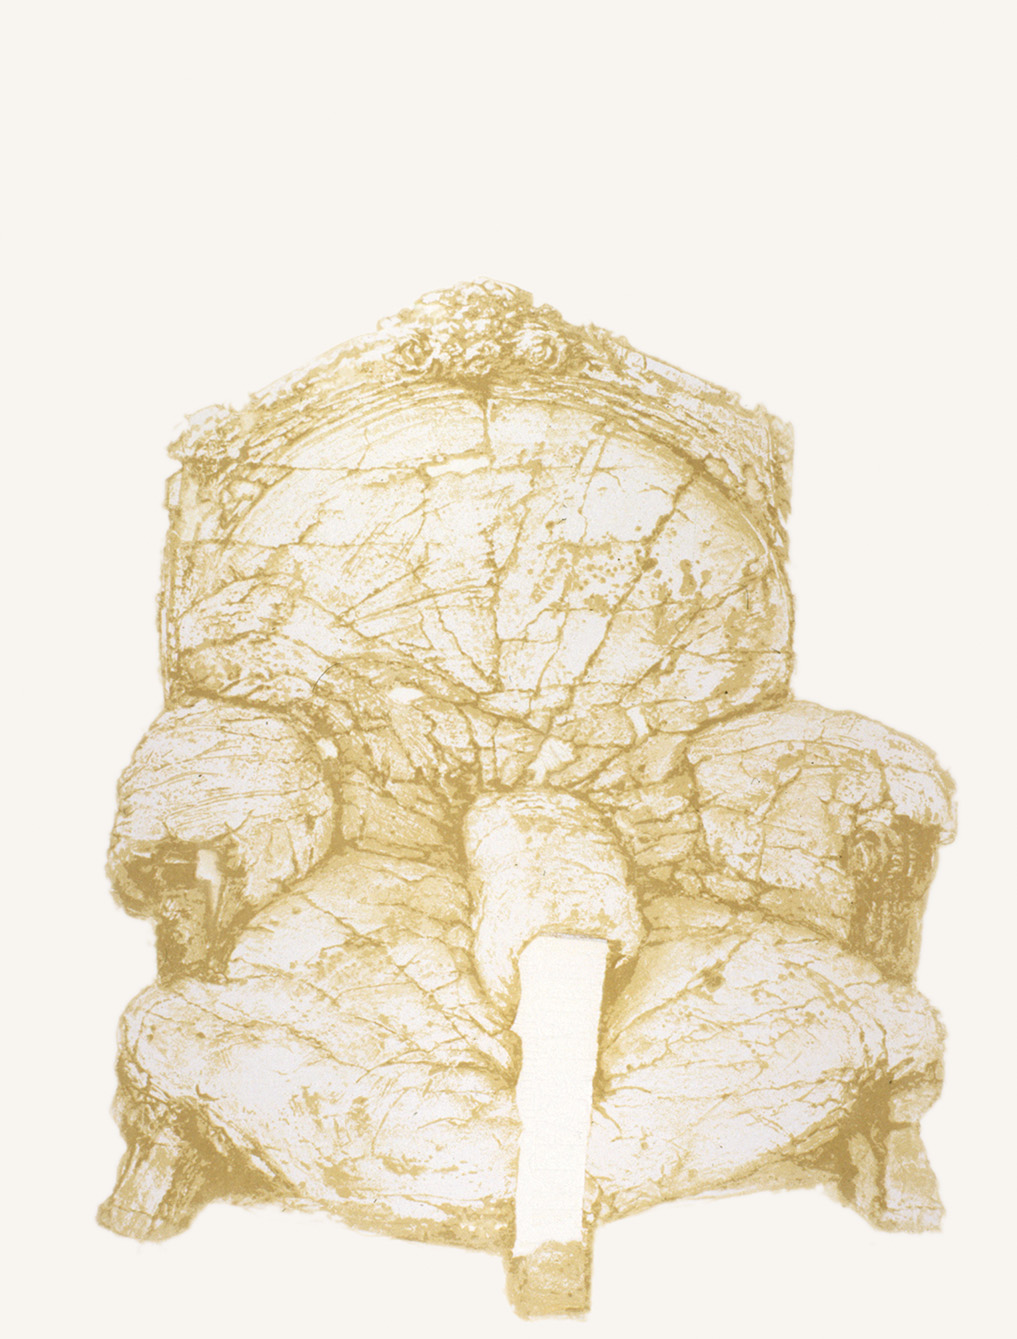 'White chair' 1980, 80 x 60 cm, 8 col. Cat. n.464